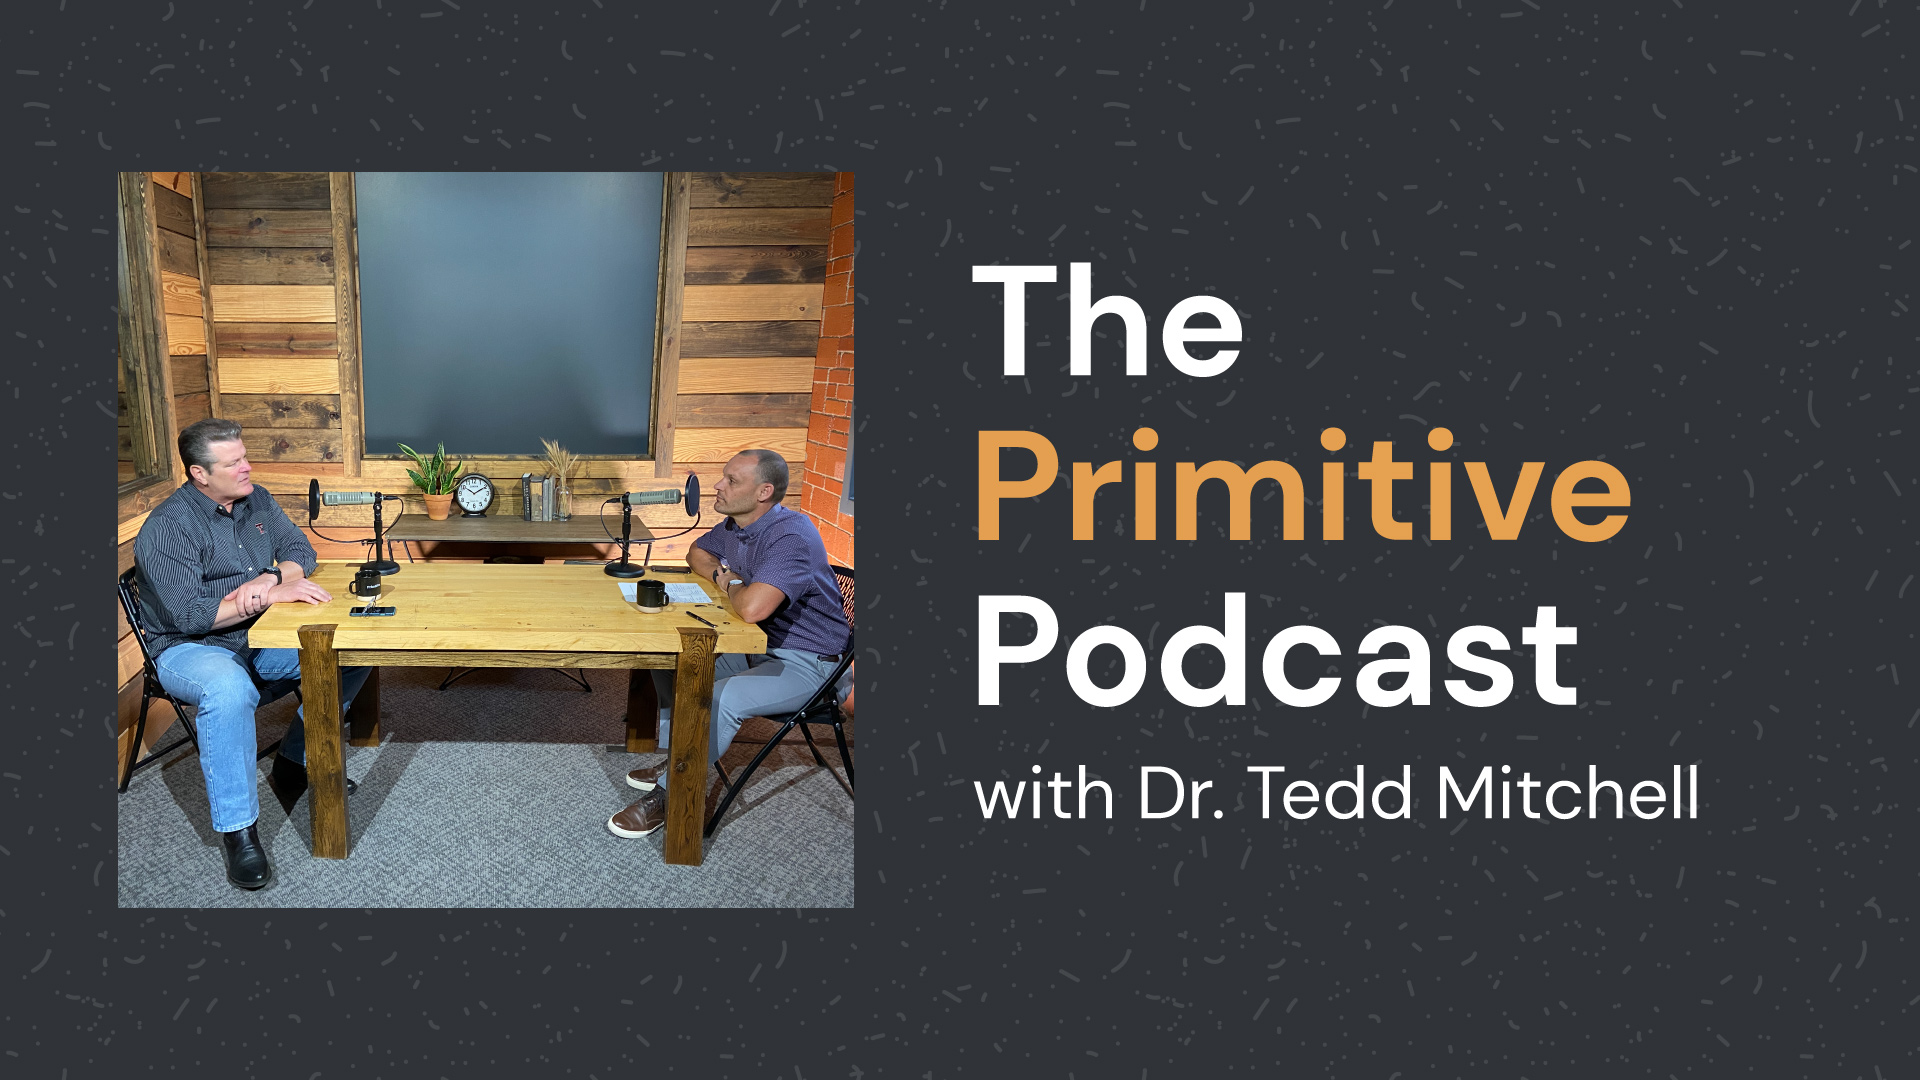 The Primitive Podcast with Dr. Tedd Mitchell